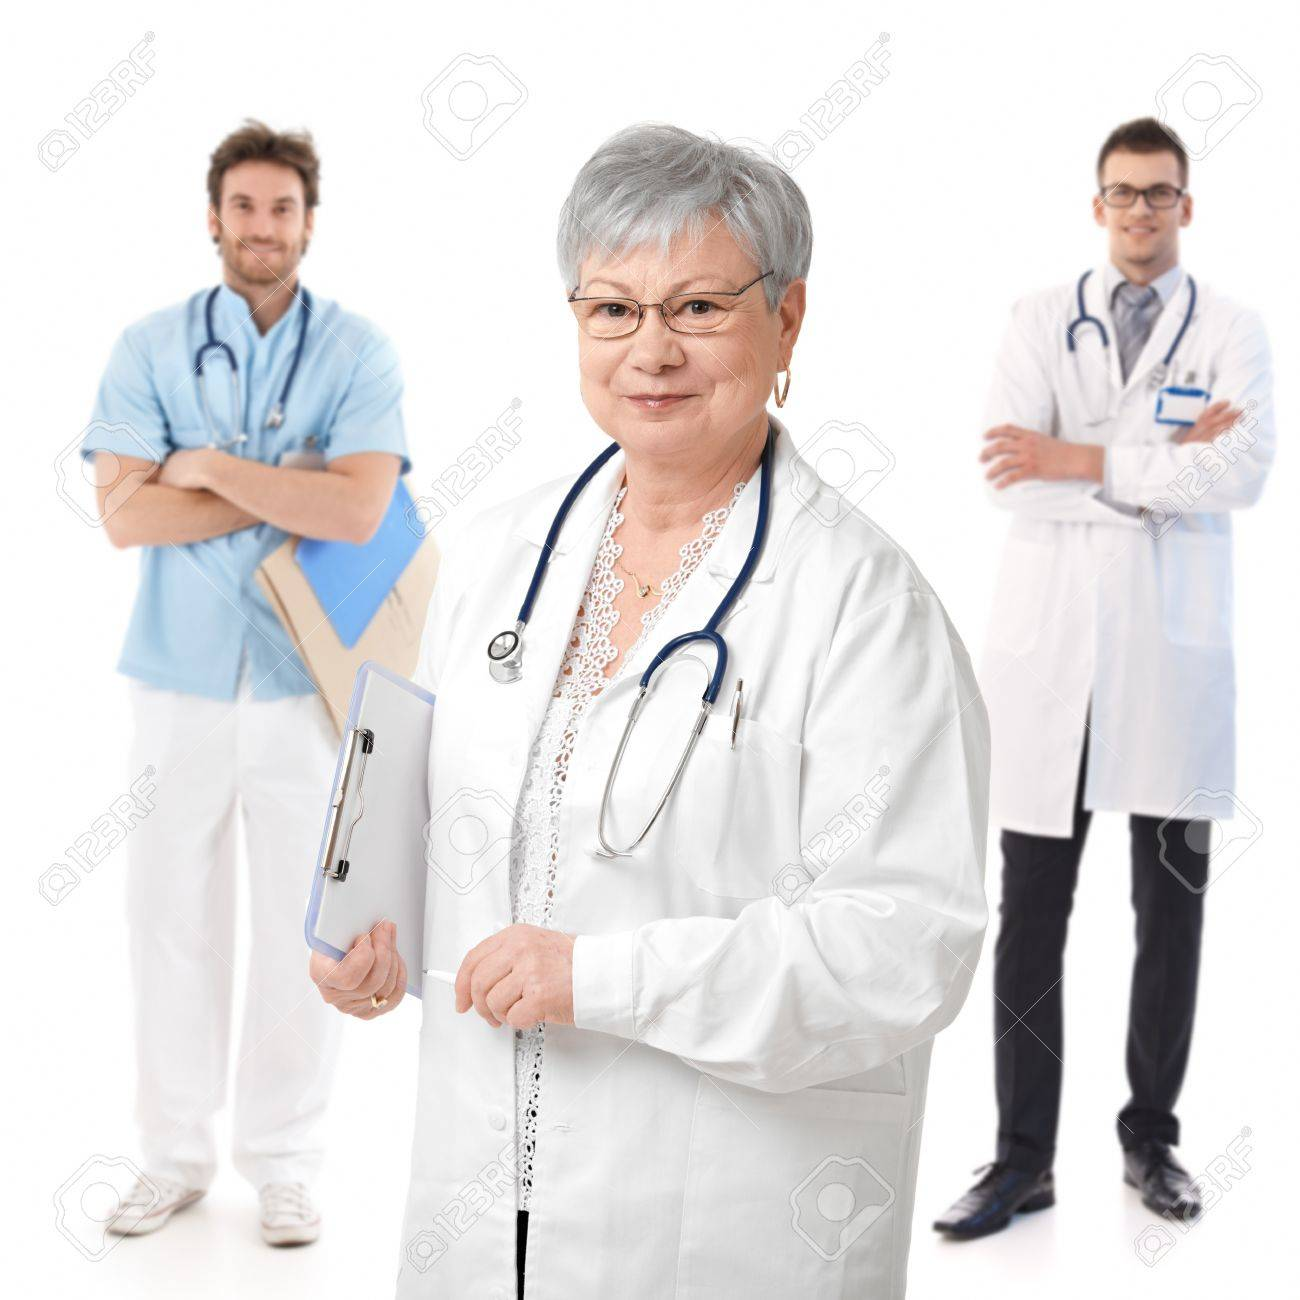 Portrait of experienced female doctor smiling, young male doctors standing behind. Stock Photo - 10818451